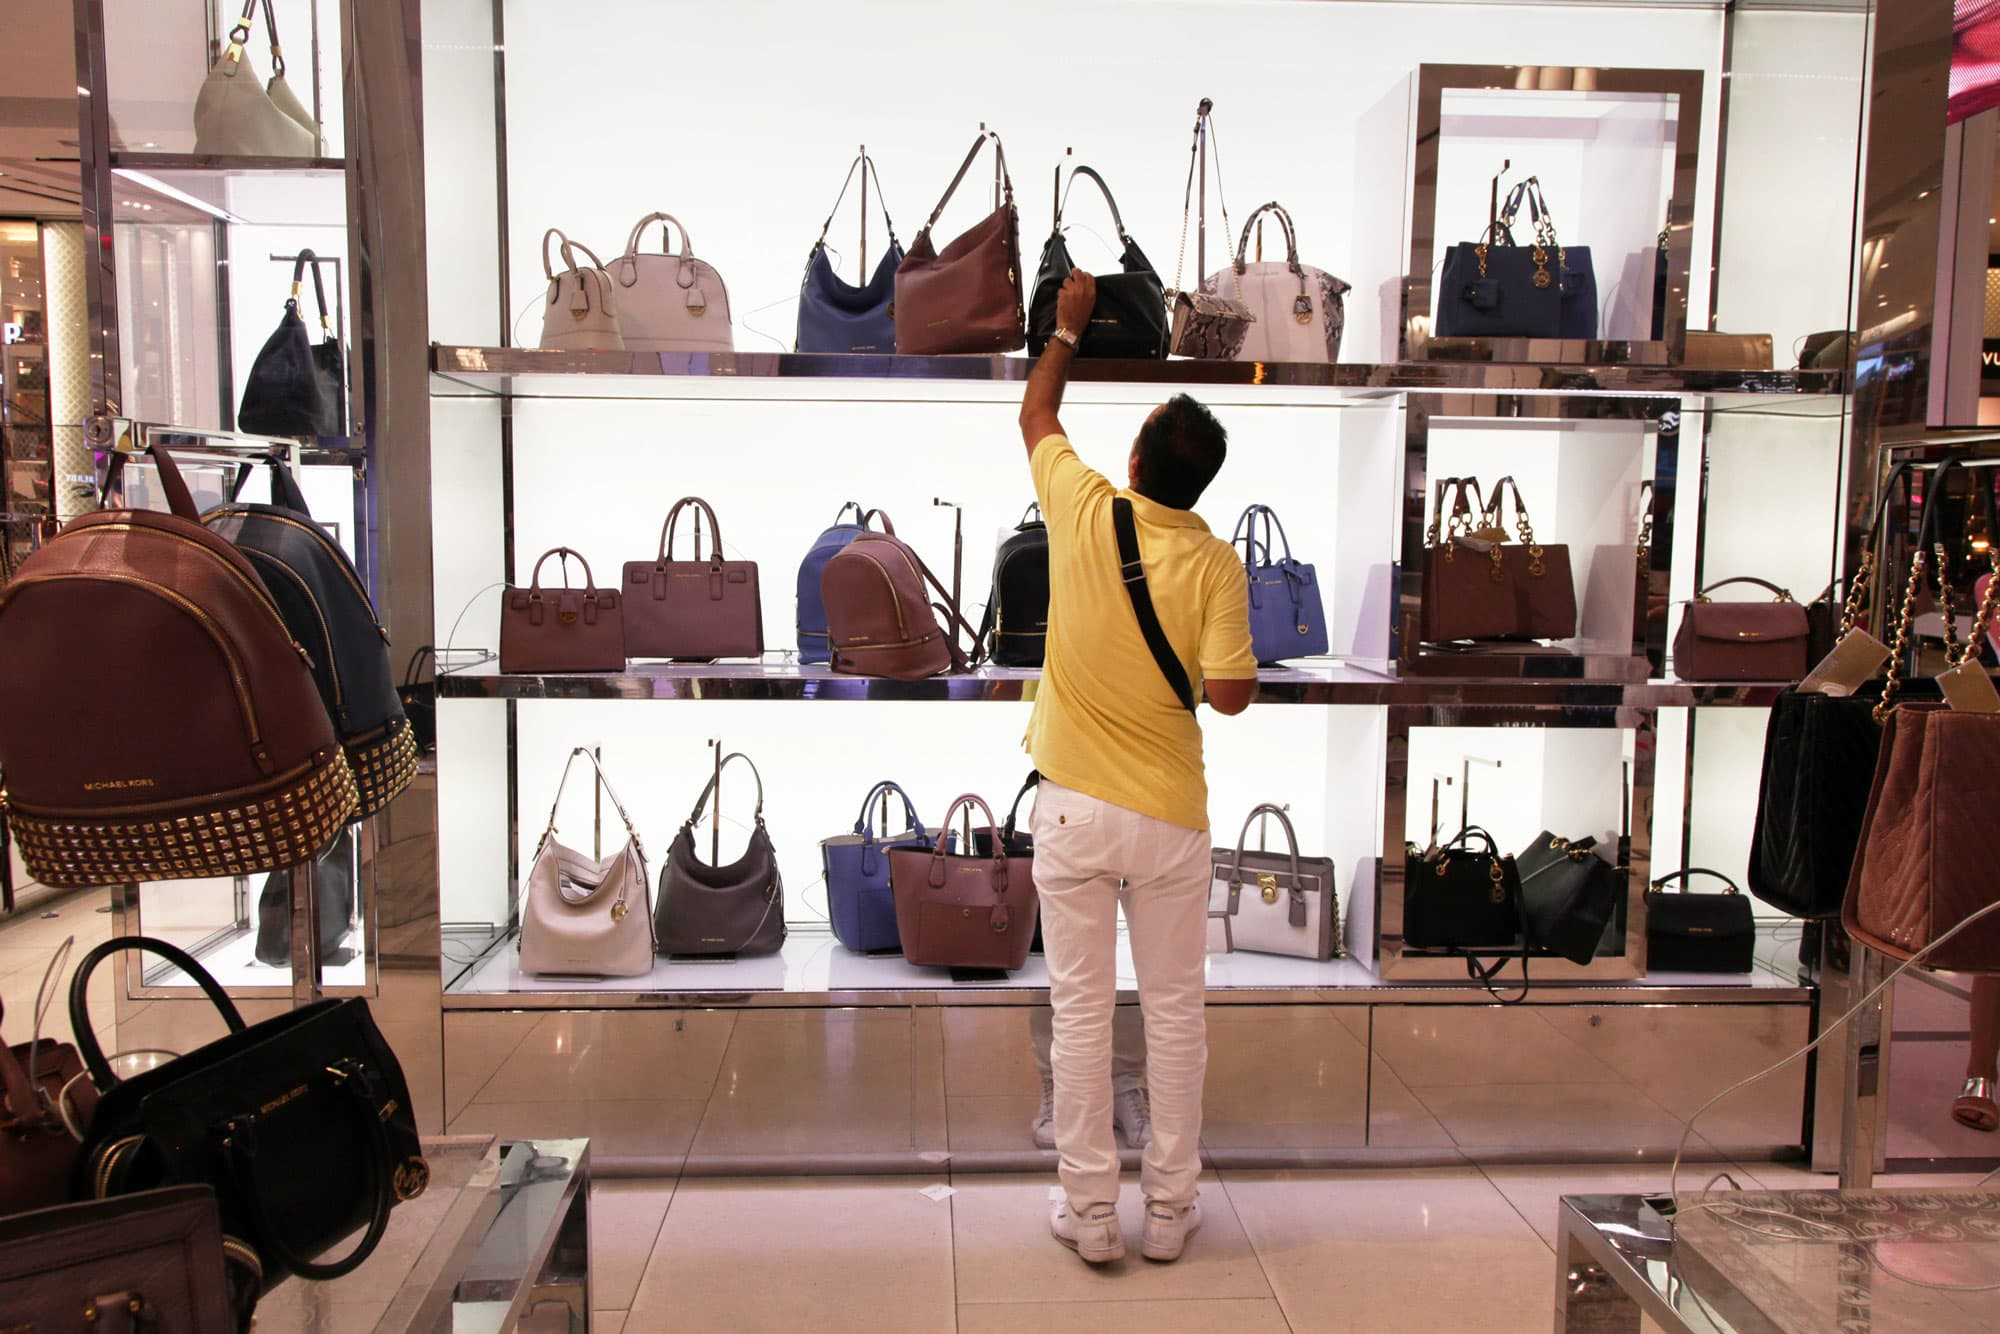 24b8e5e7064f Michael Kors is fed up with department stores damaging its brand